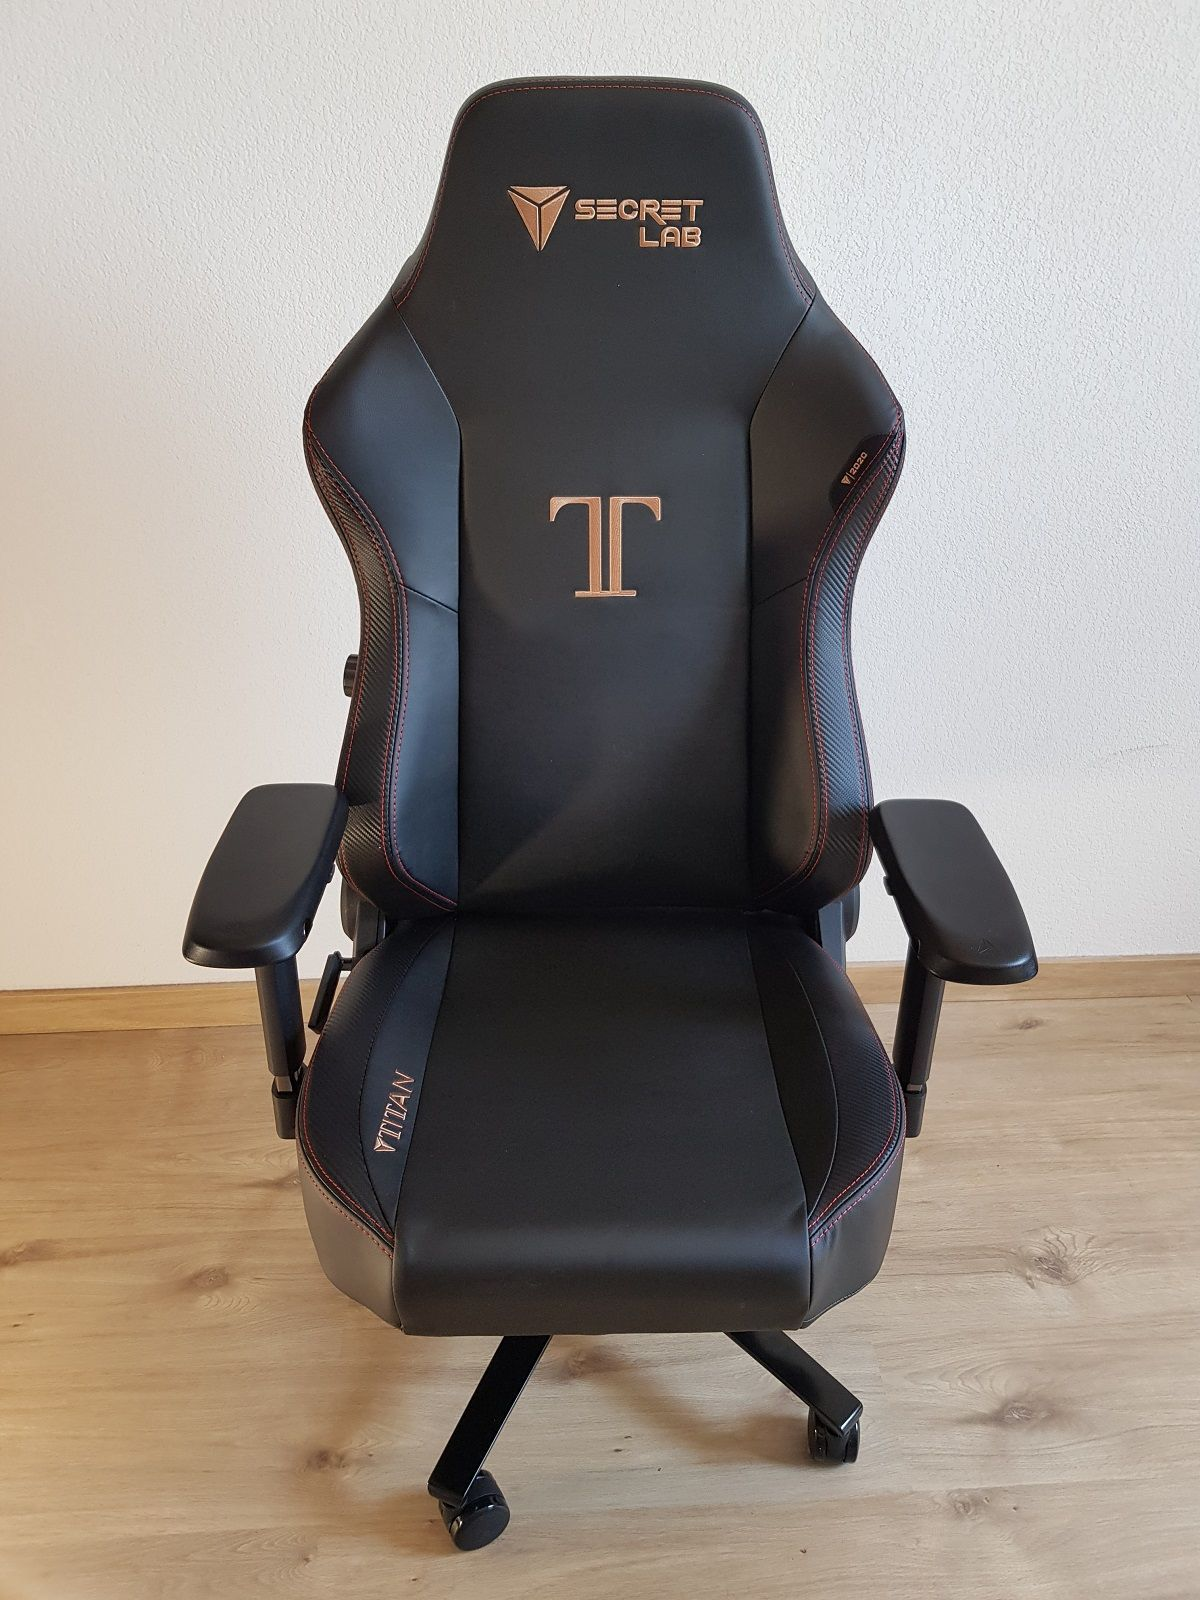 Best Gaming Chairs 2020 SecretLab Titan 2020 Series Review: The All New Favorite Gaming